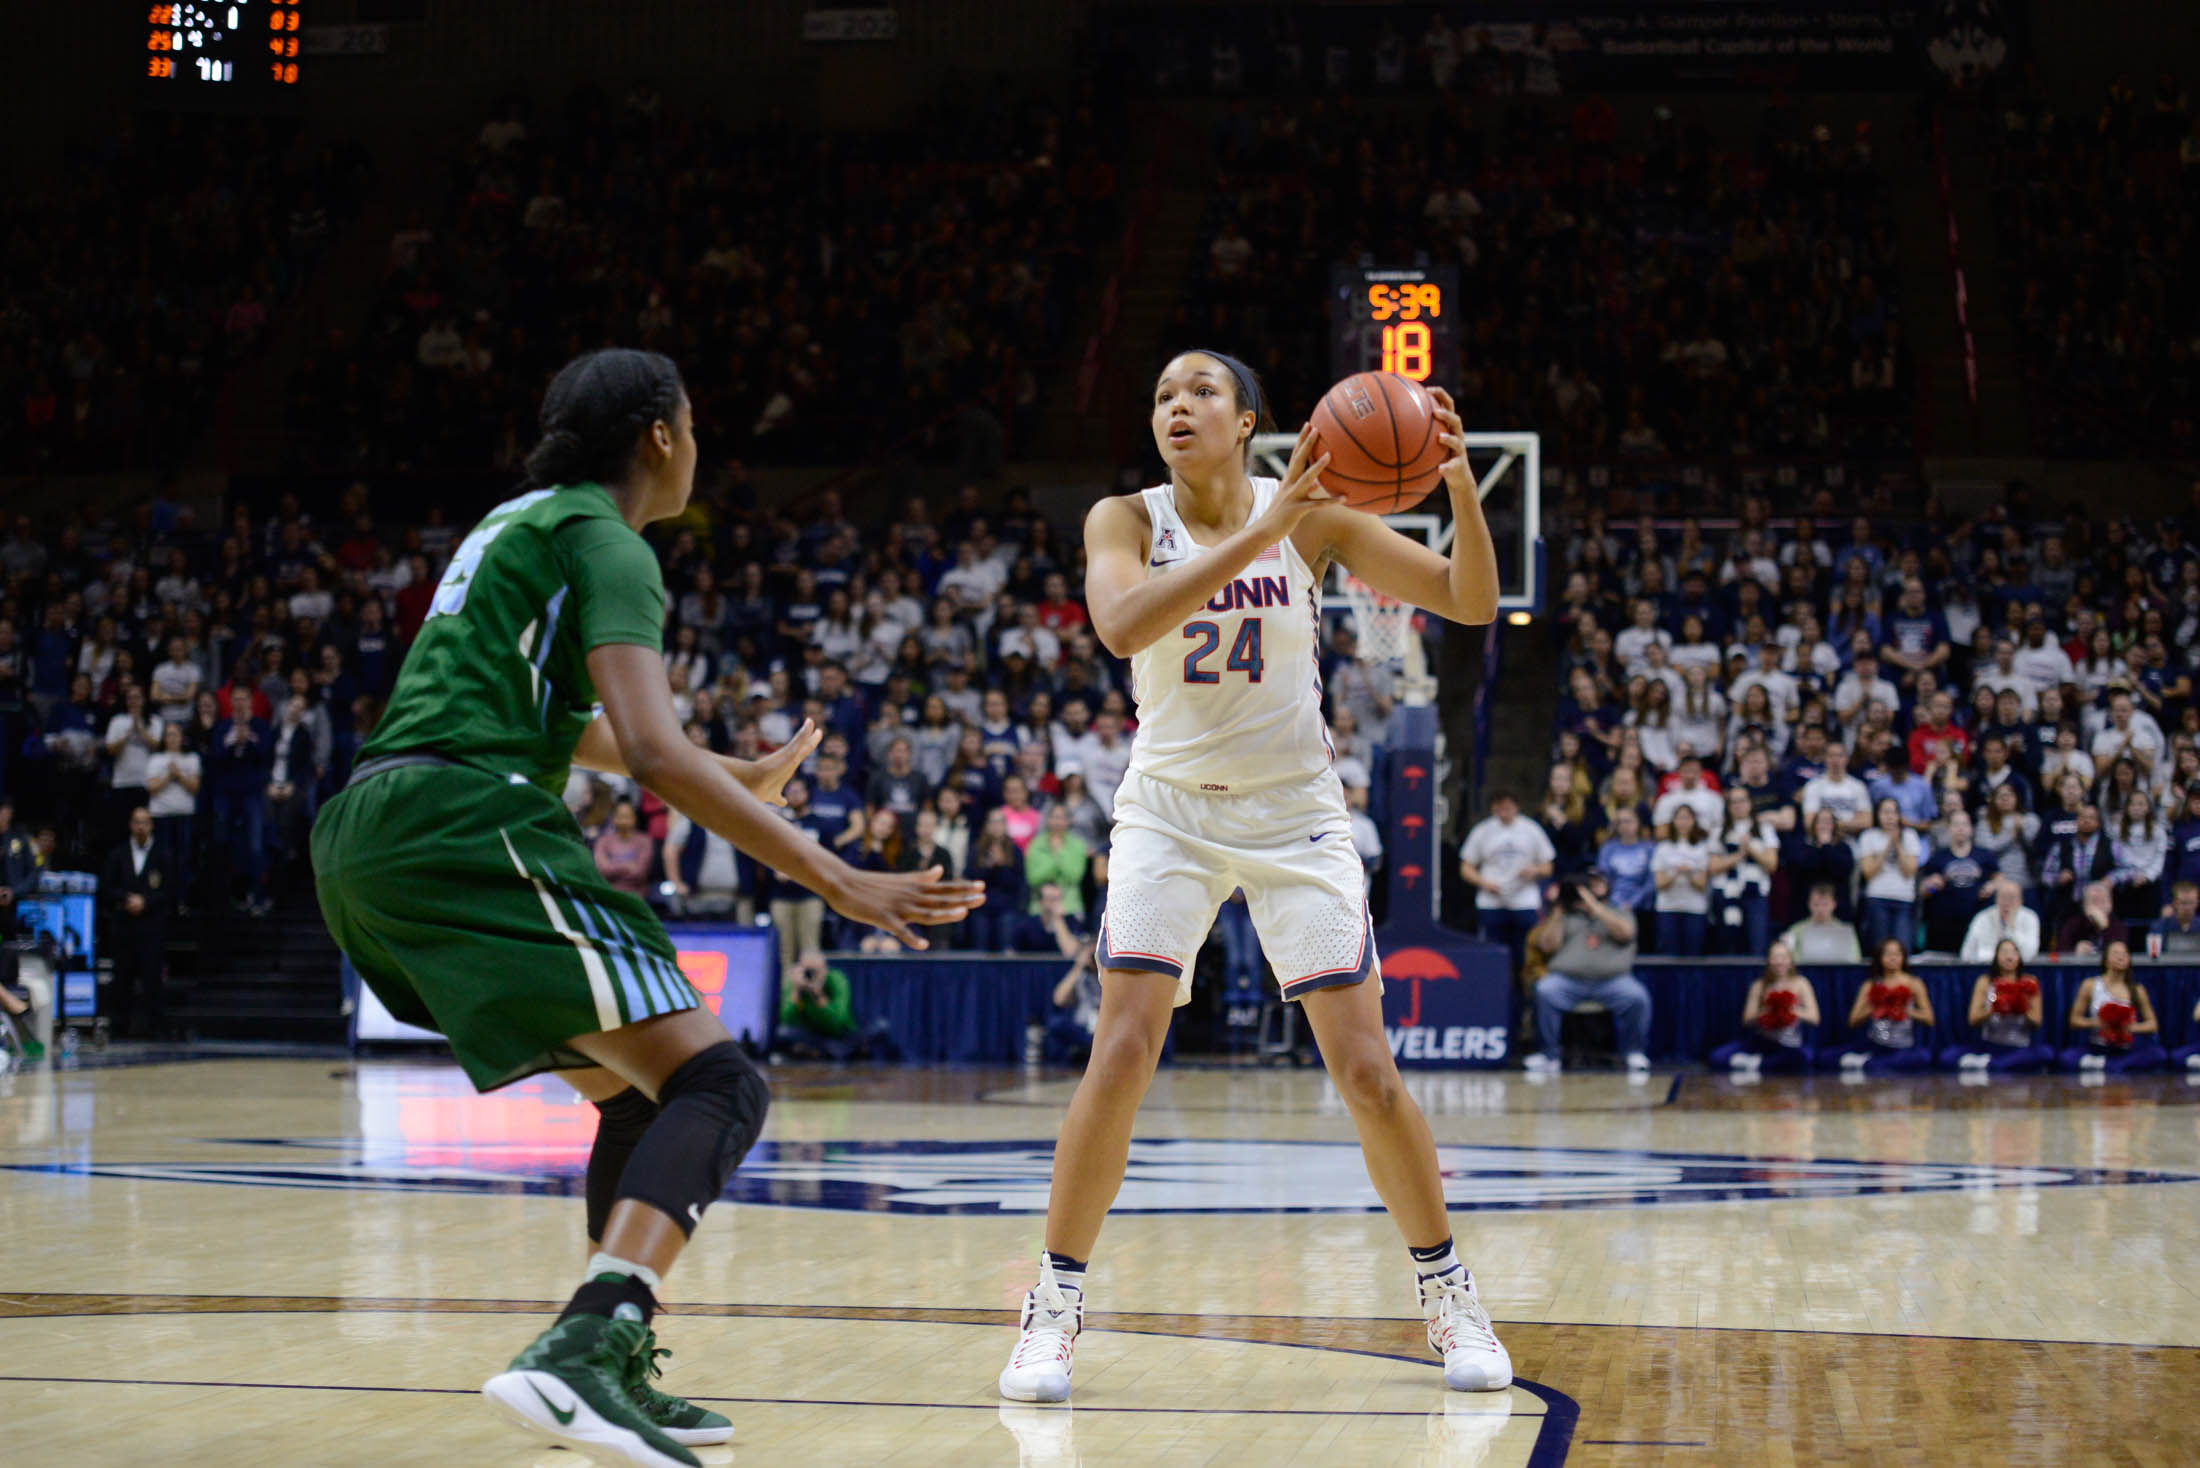 Sophomore forward Napheesa Collier (24) looks to pass in the Huskies' game against Tulane on Saturday, Jan. 22nd at Gampel Pavilion. (Jason Jiang/The Daily Campus)